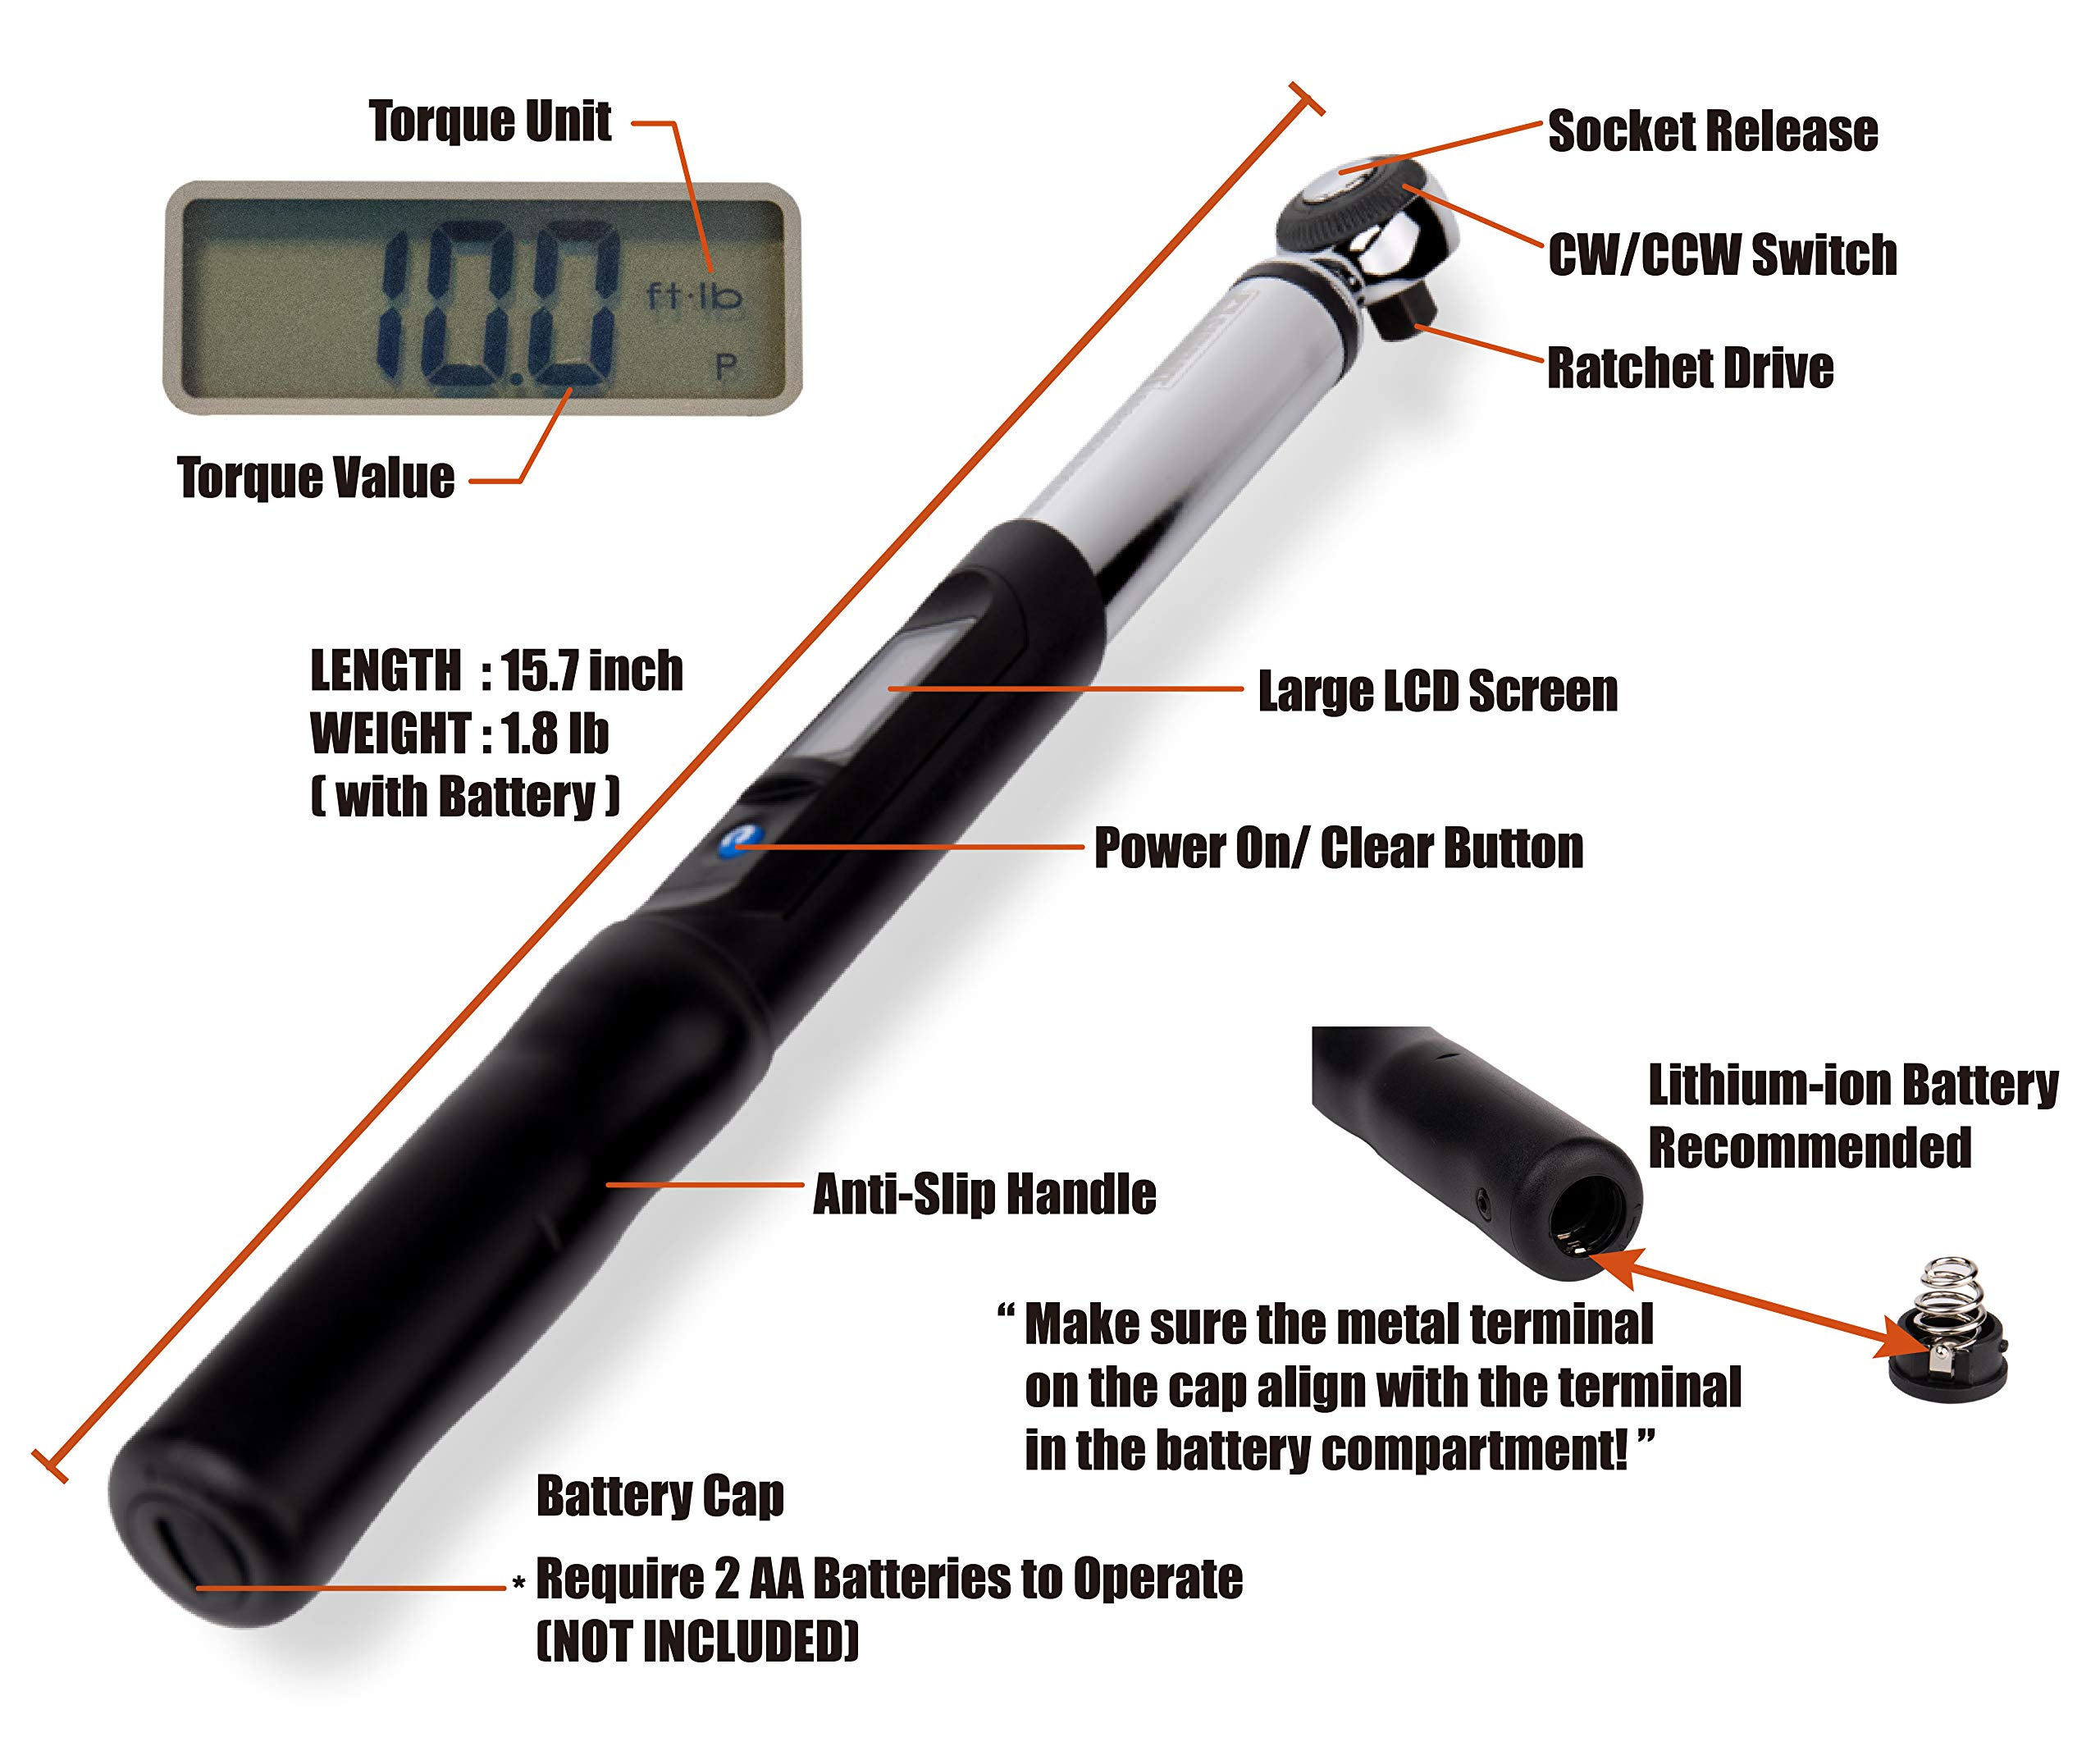 Summit Tools Digital Torque Wrench with 3/8-inch Square Driver and 5-99.5 ft-lbs Torque Range, 0.1 ft-lb Resolution, ±3% Tolerance, Peak Hold Feature, Certificate of Calibration (ES3-135CN) by Summit Tools (Image #3)